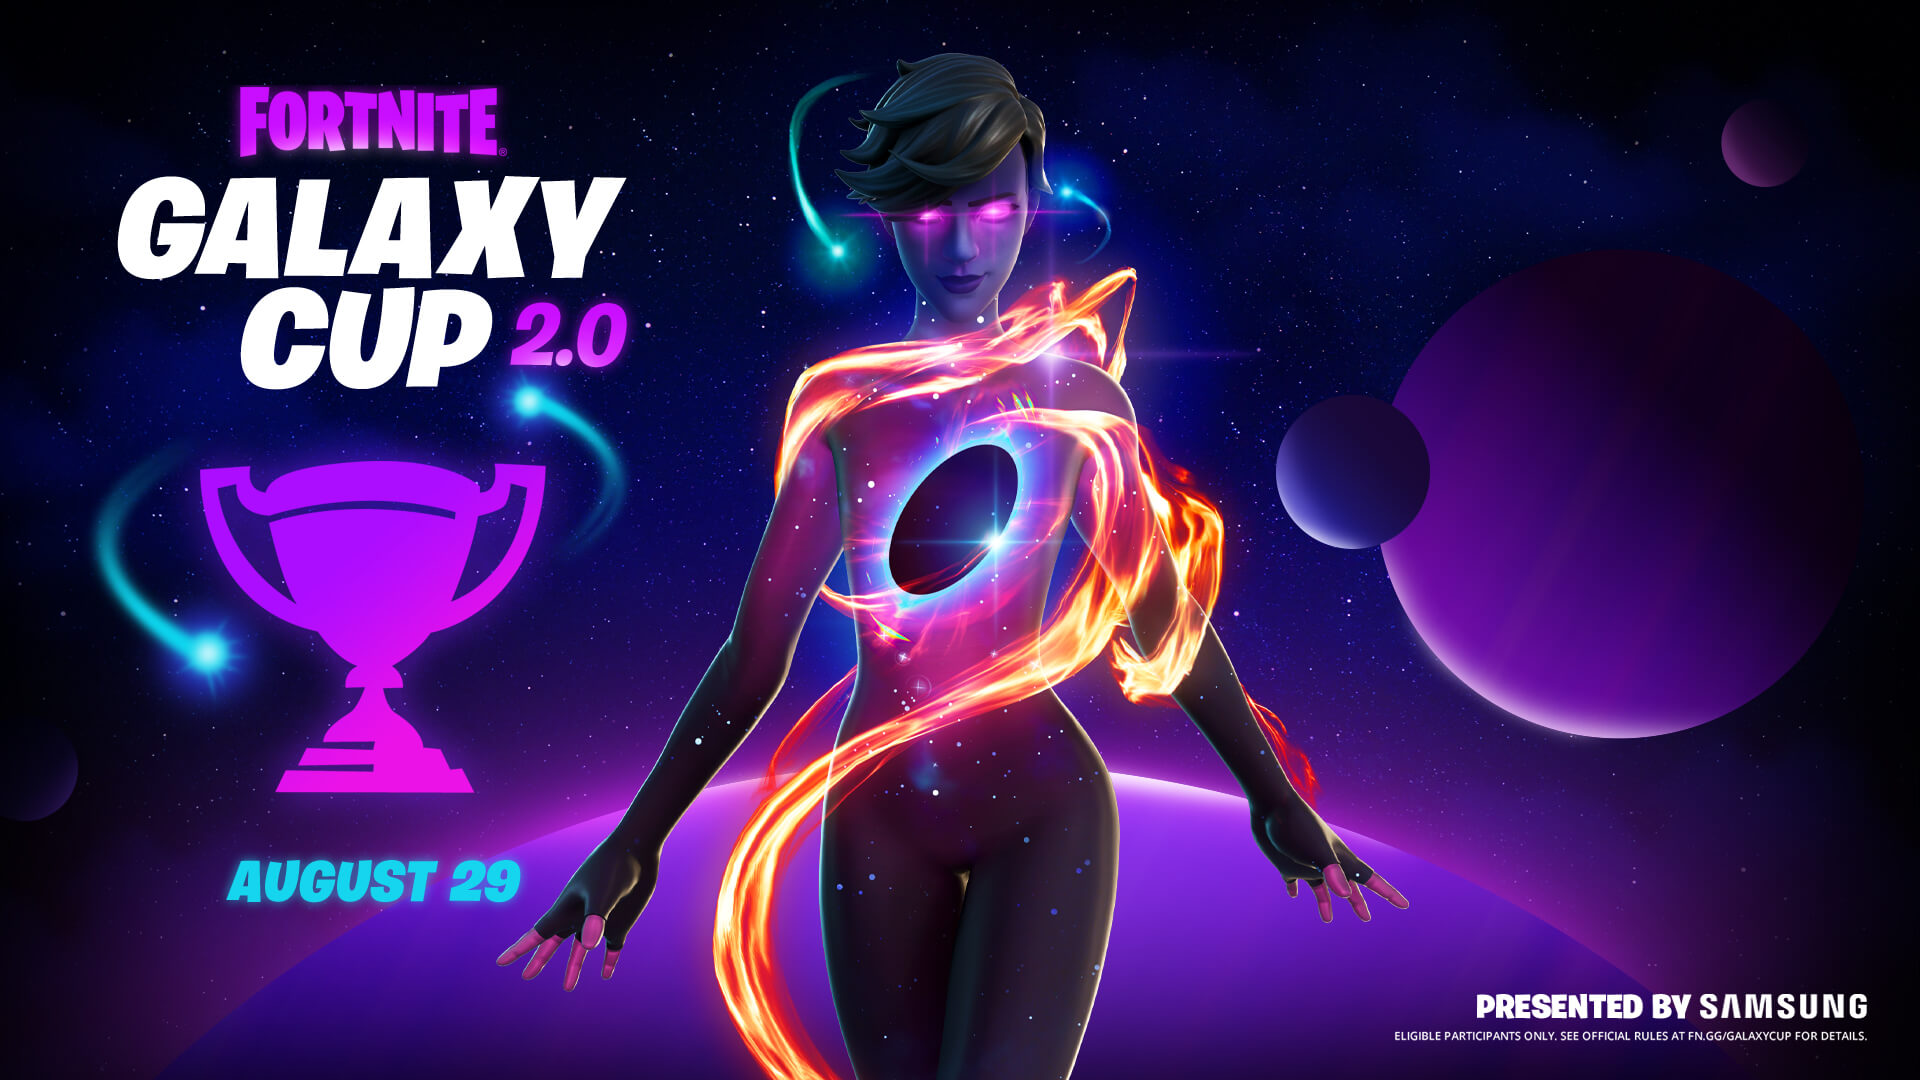 The Galaxy Cup 2.0 takes place August 29, Exclusive to Android